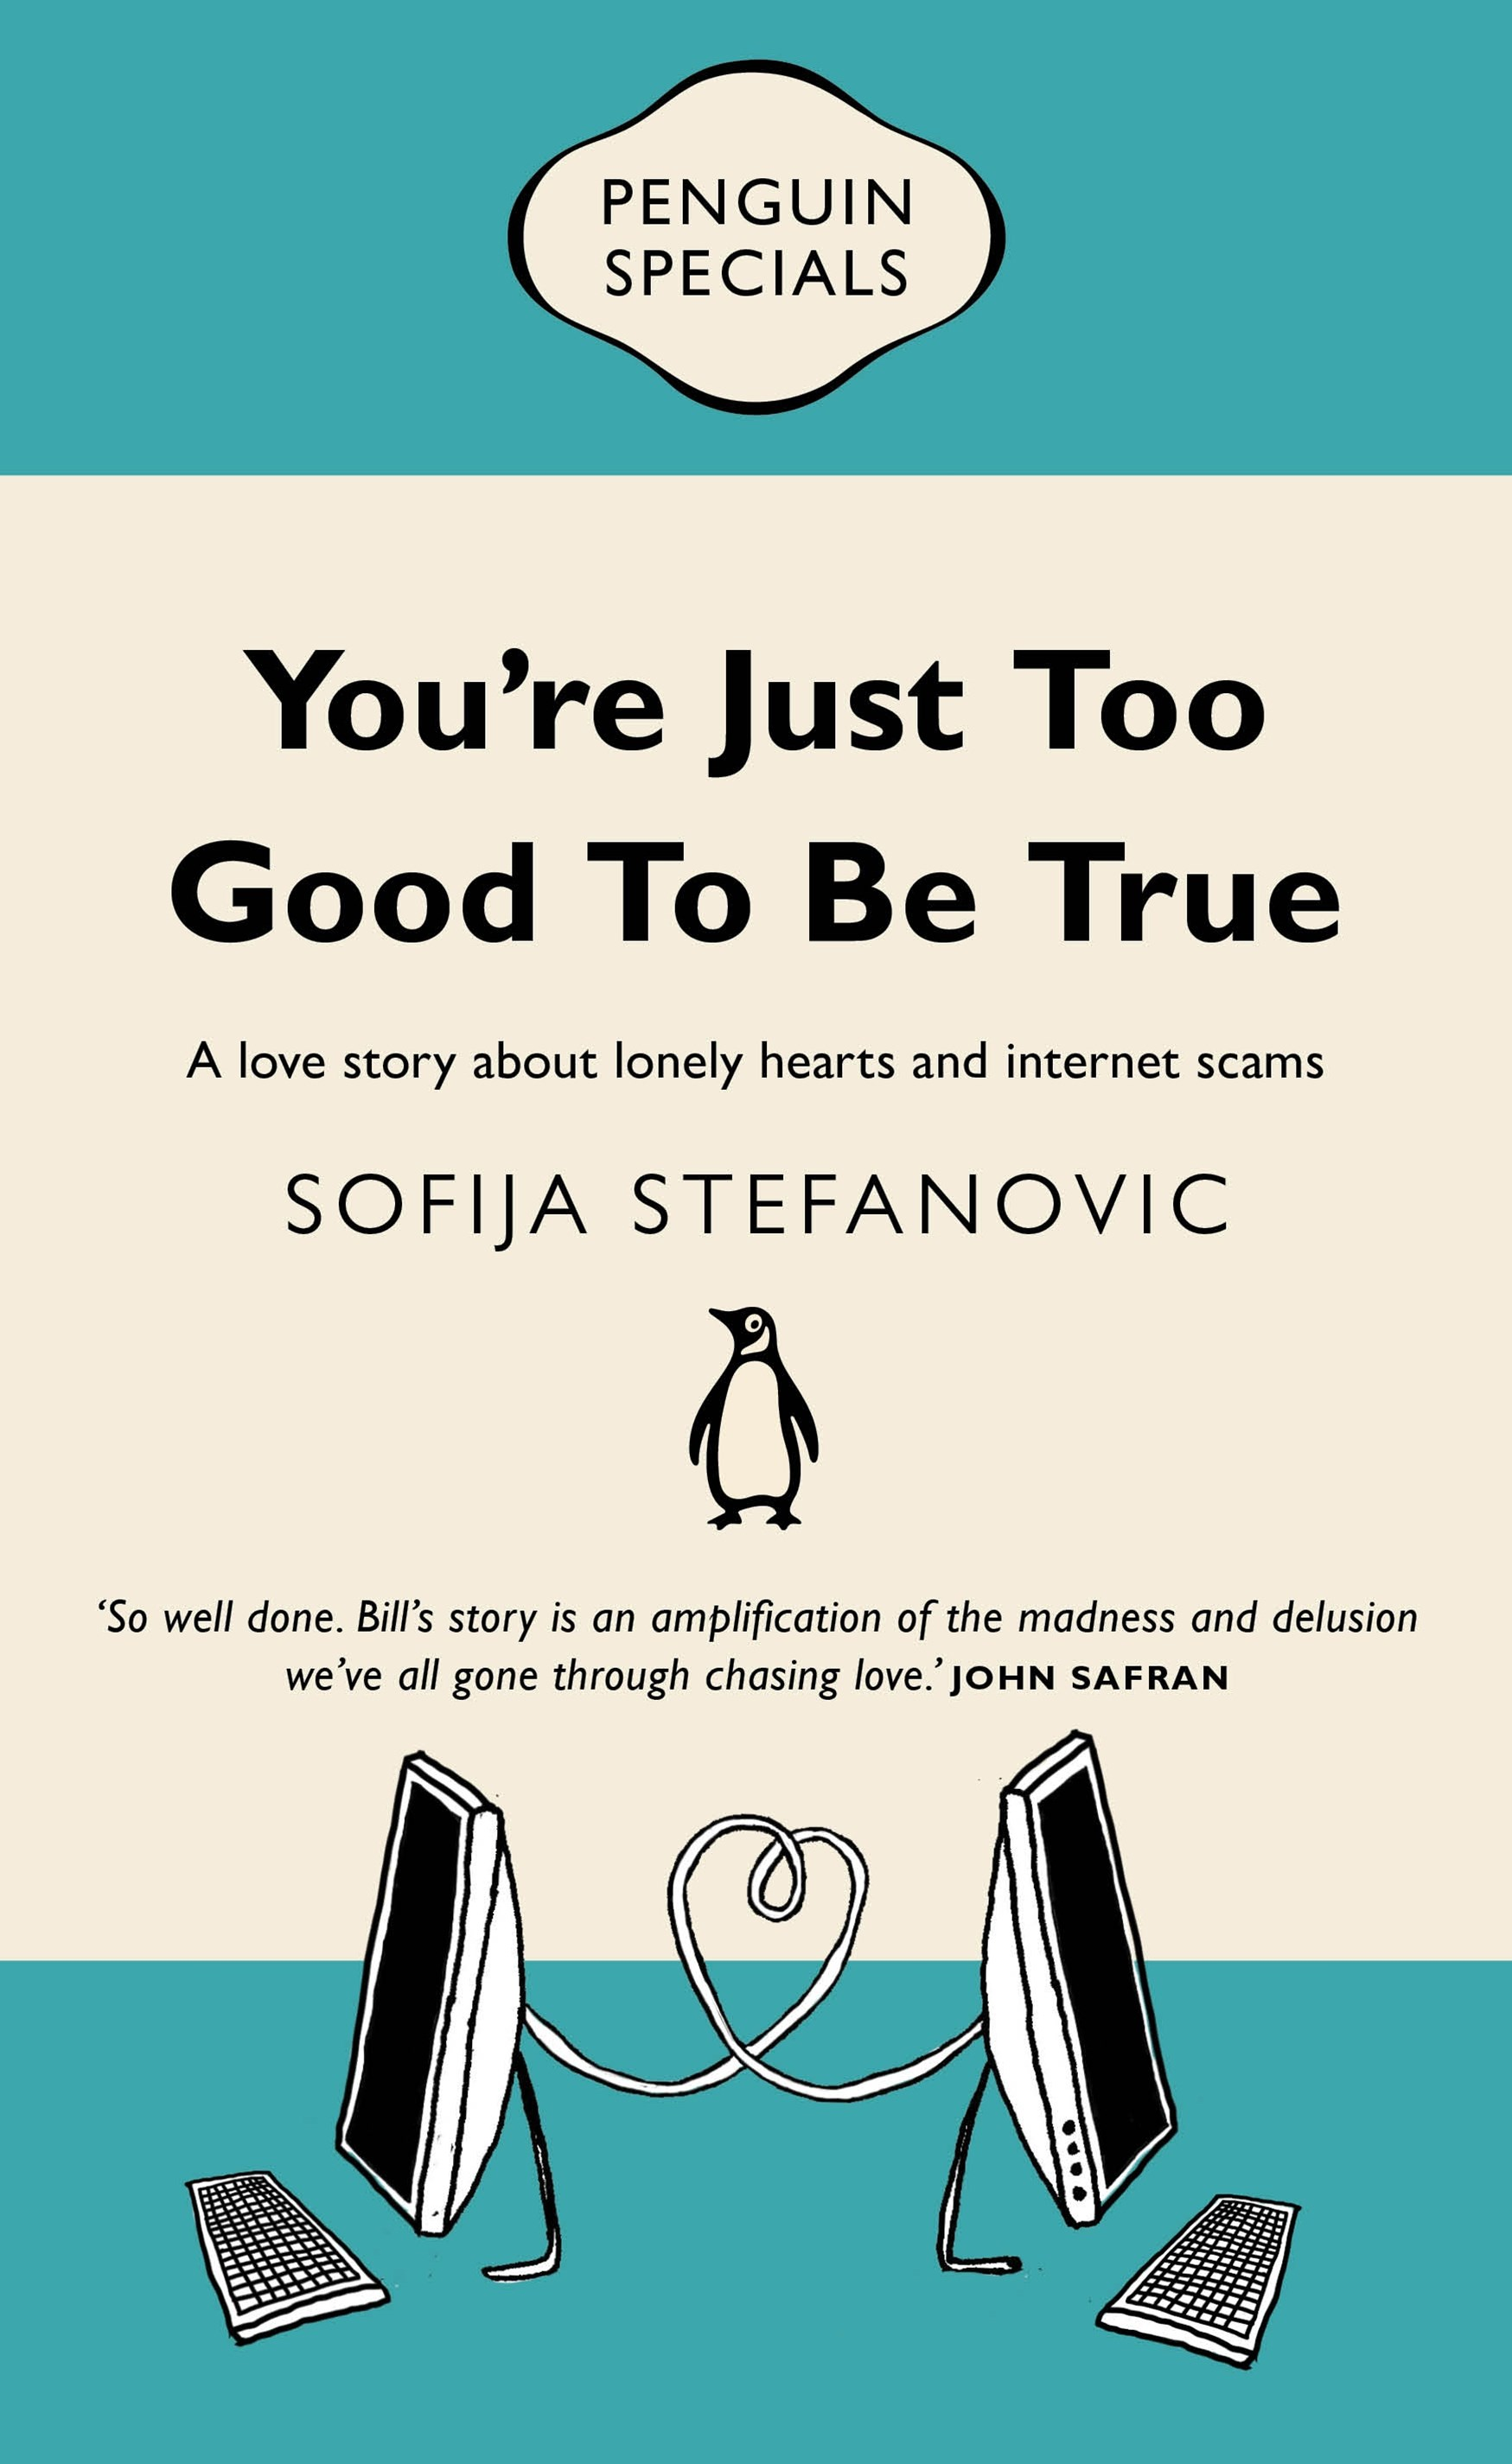 You're Just Too Good To Be True: Penguin Special